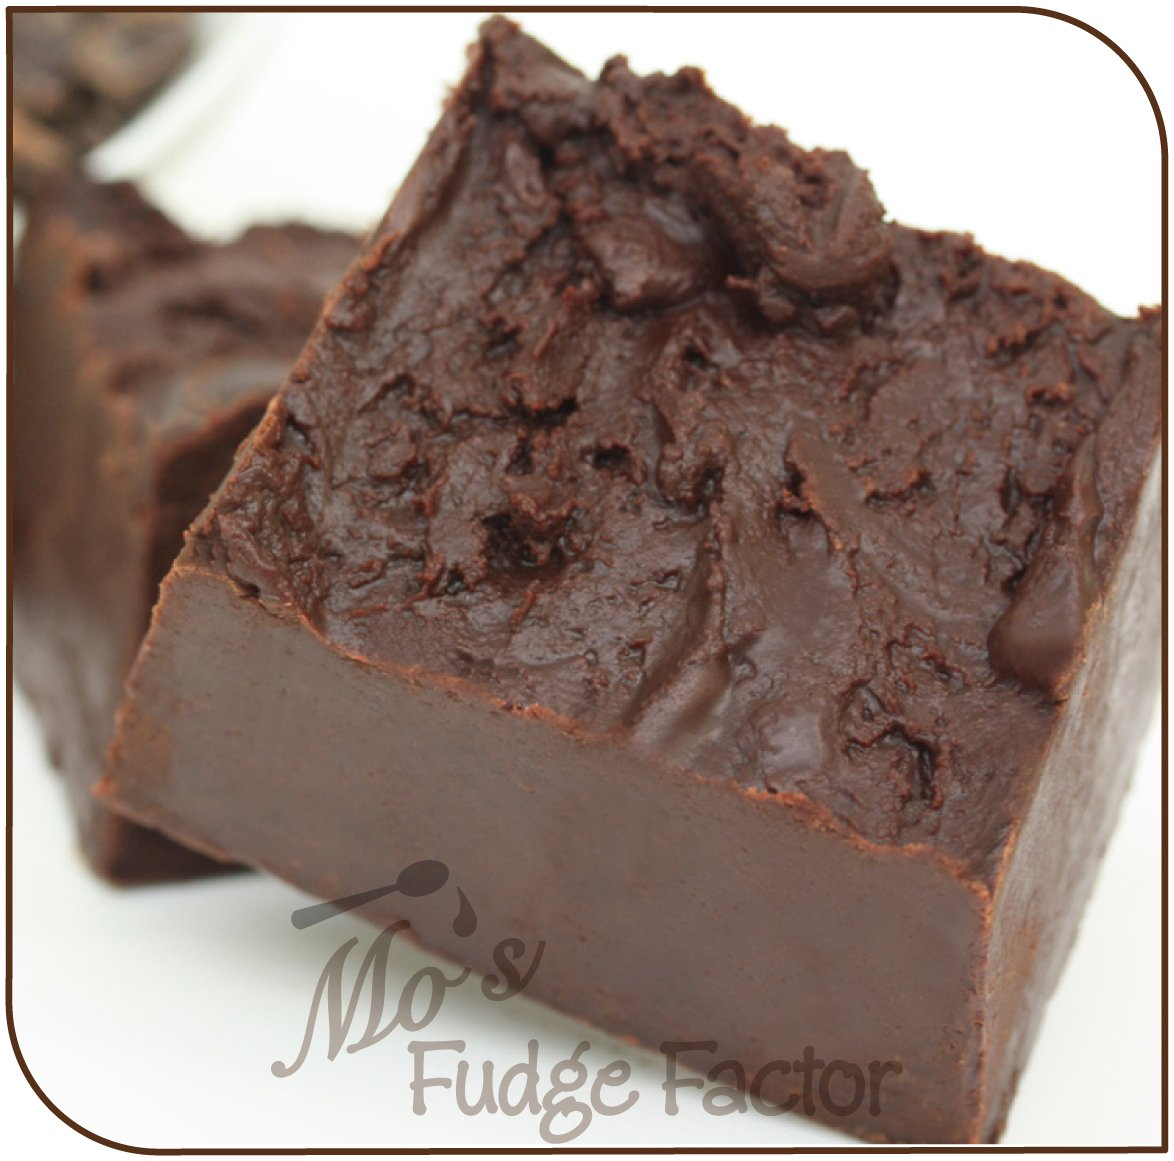 Mo's Fudge Factor, Dark Chocolate Fudge, 2 pound